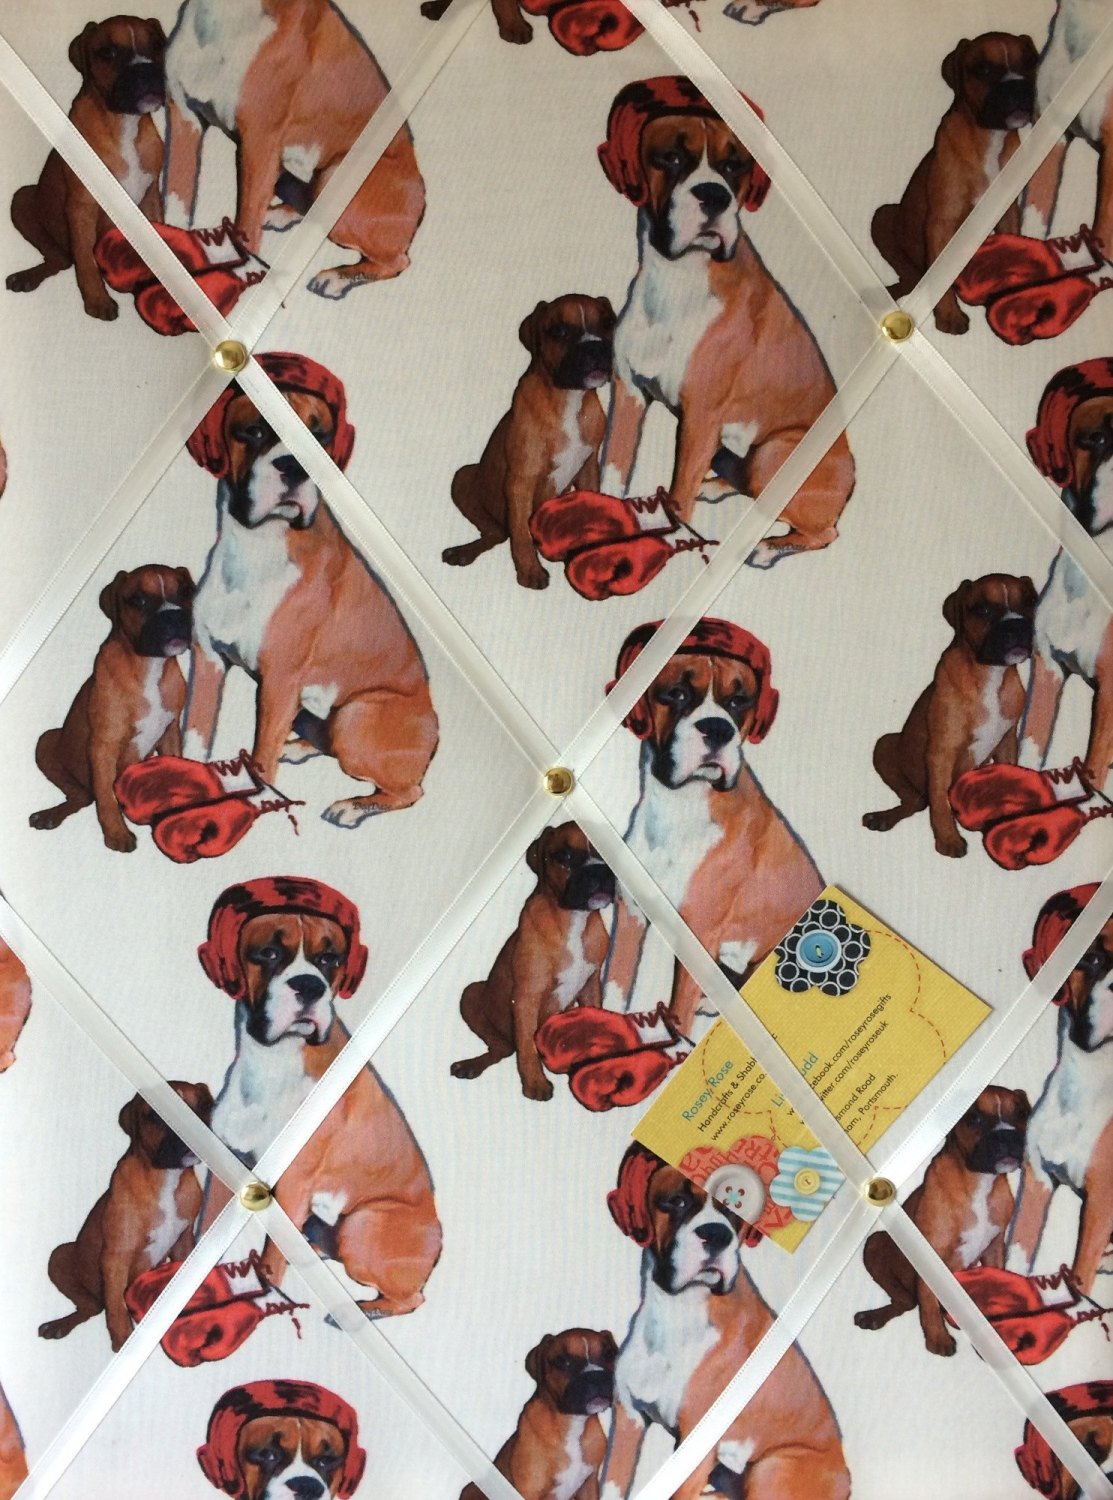 Medium 40x30cm Boxing Lessons Boxer Dog Hand Crafted Fabric Notice / Pin /